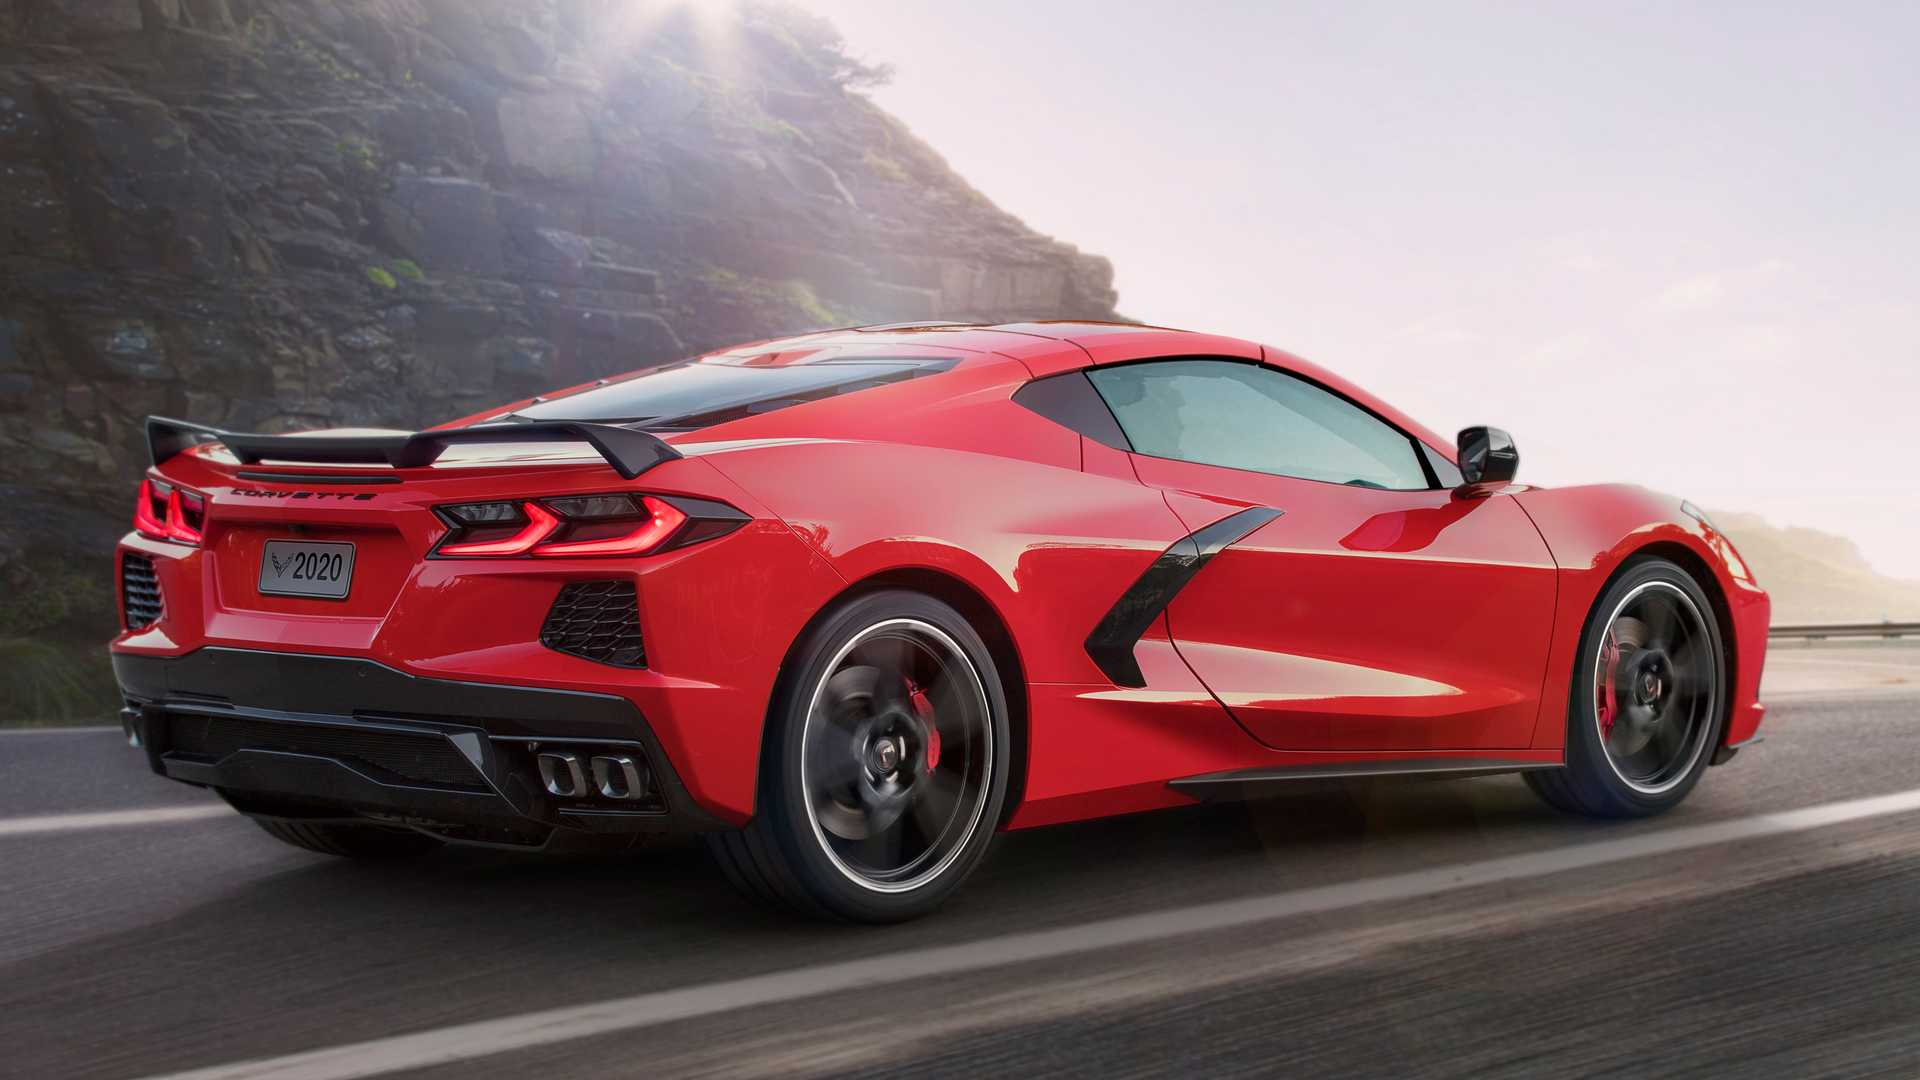 2020 Corvette In-Car Acceleration Video Is A Little Underwhelming